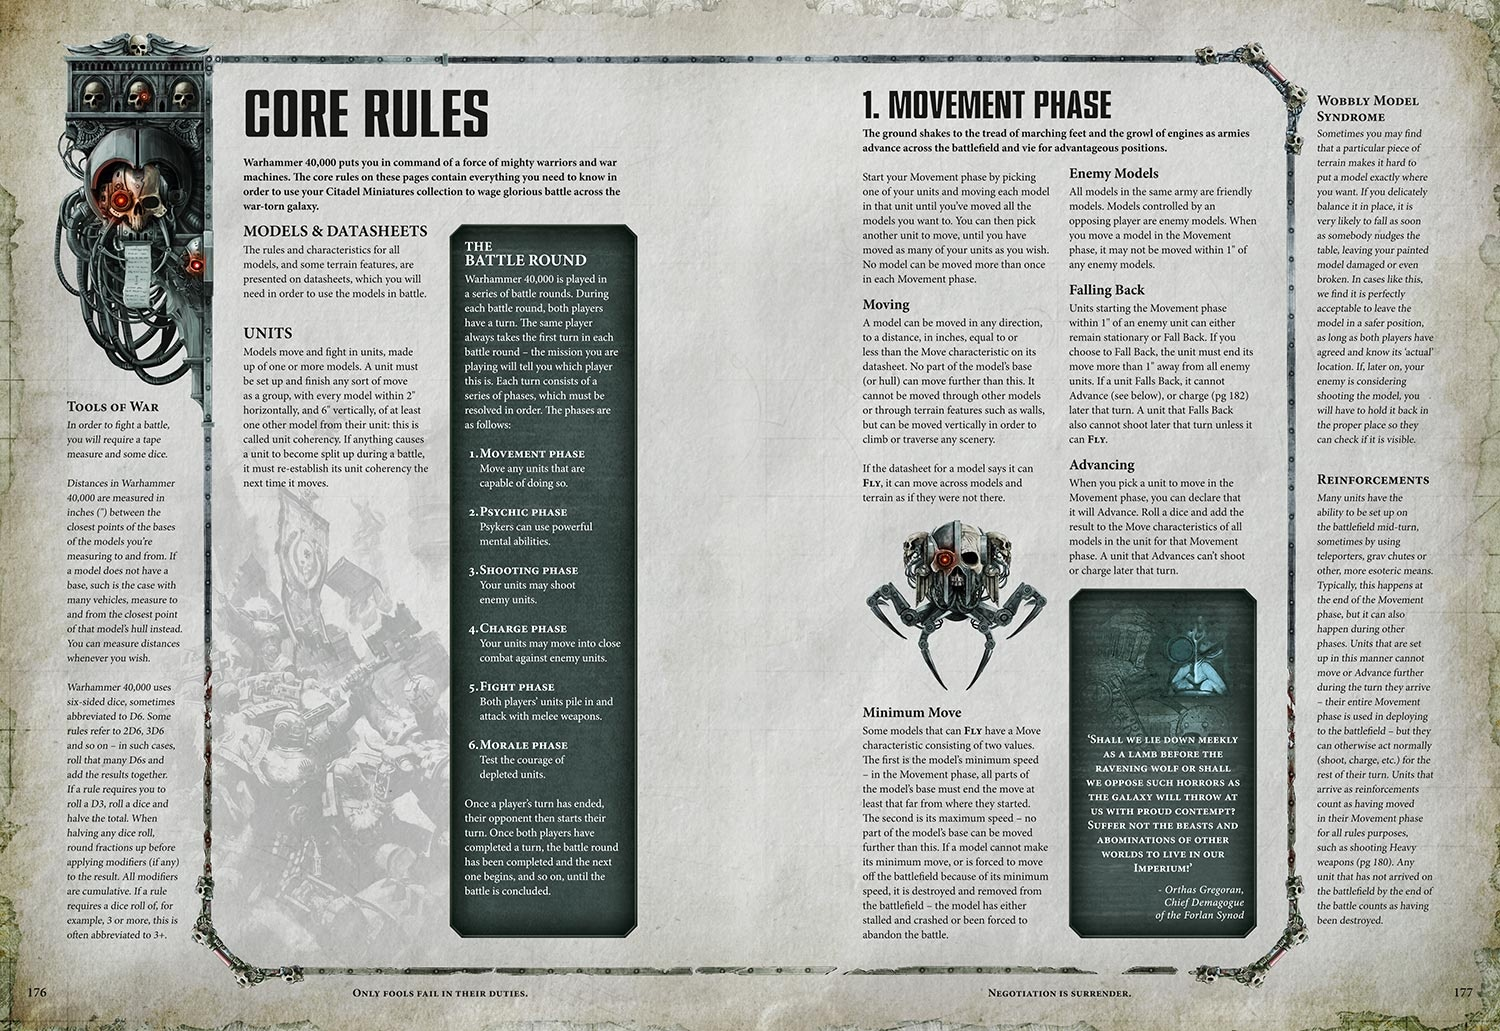 [MOBI] Warhammer Fantasy 8th Edition Rulebook